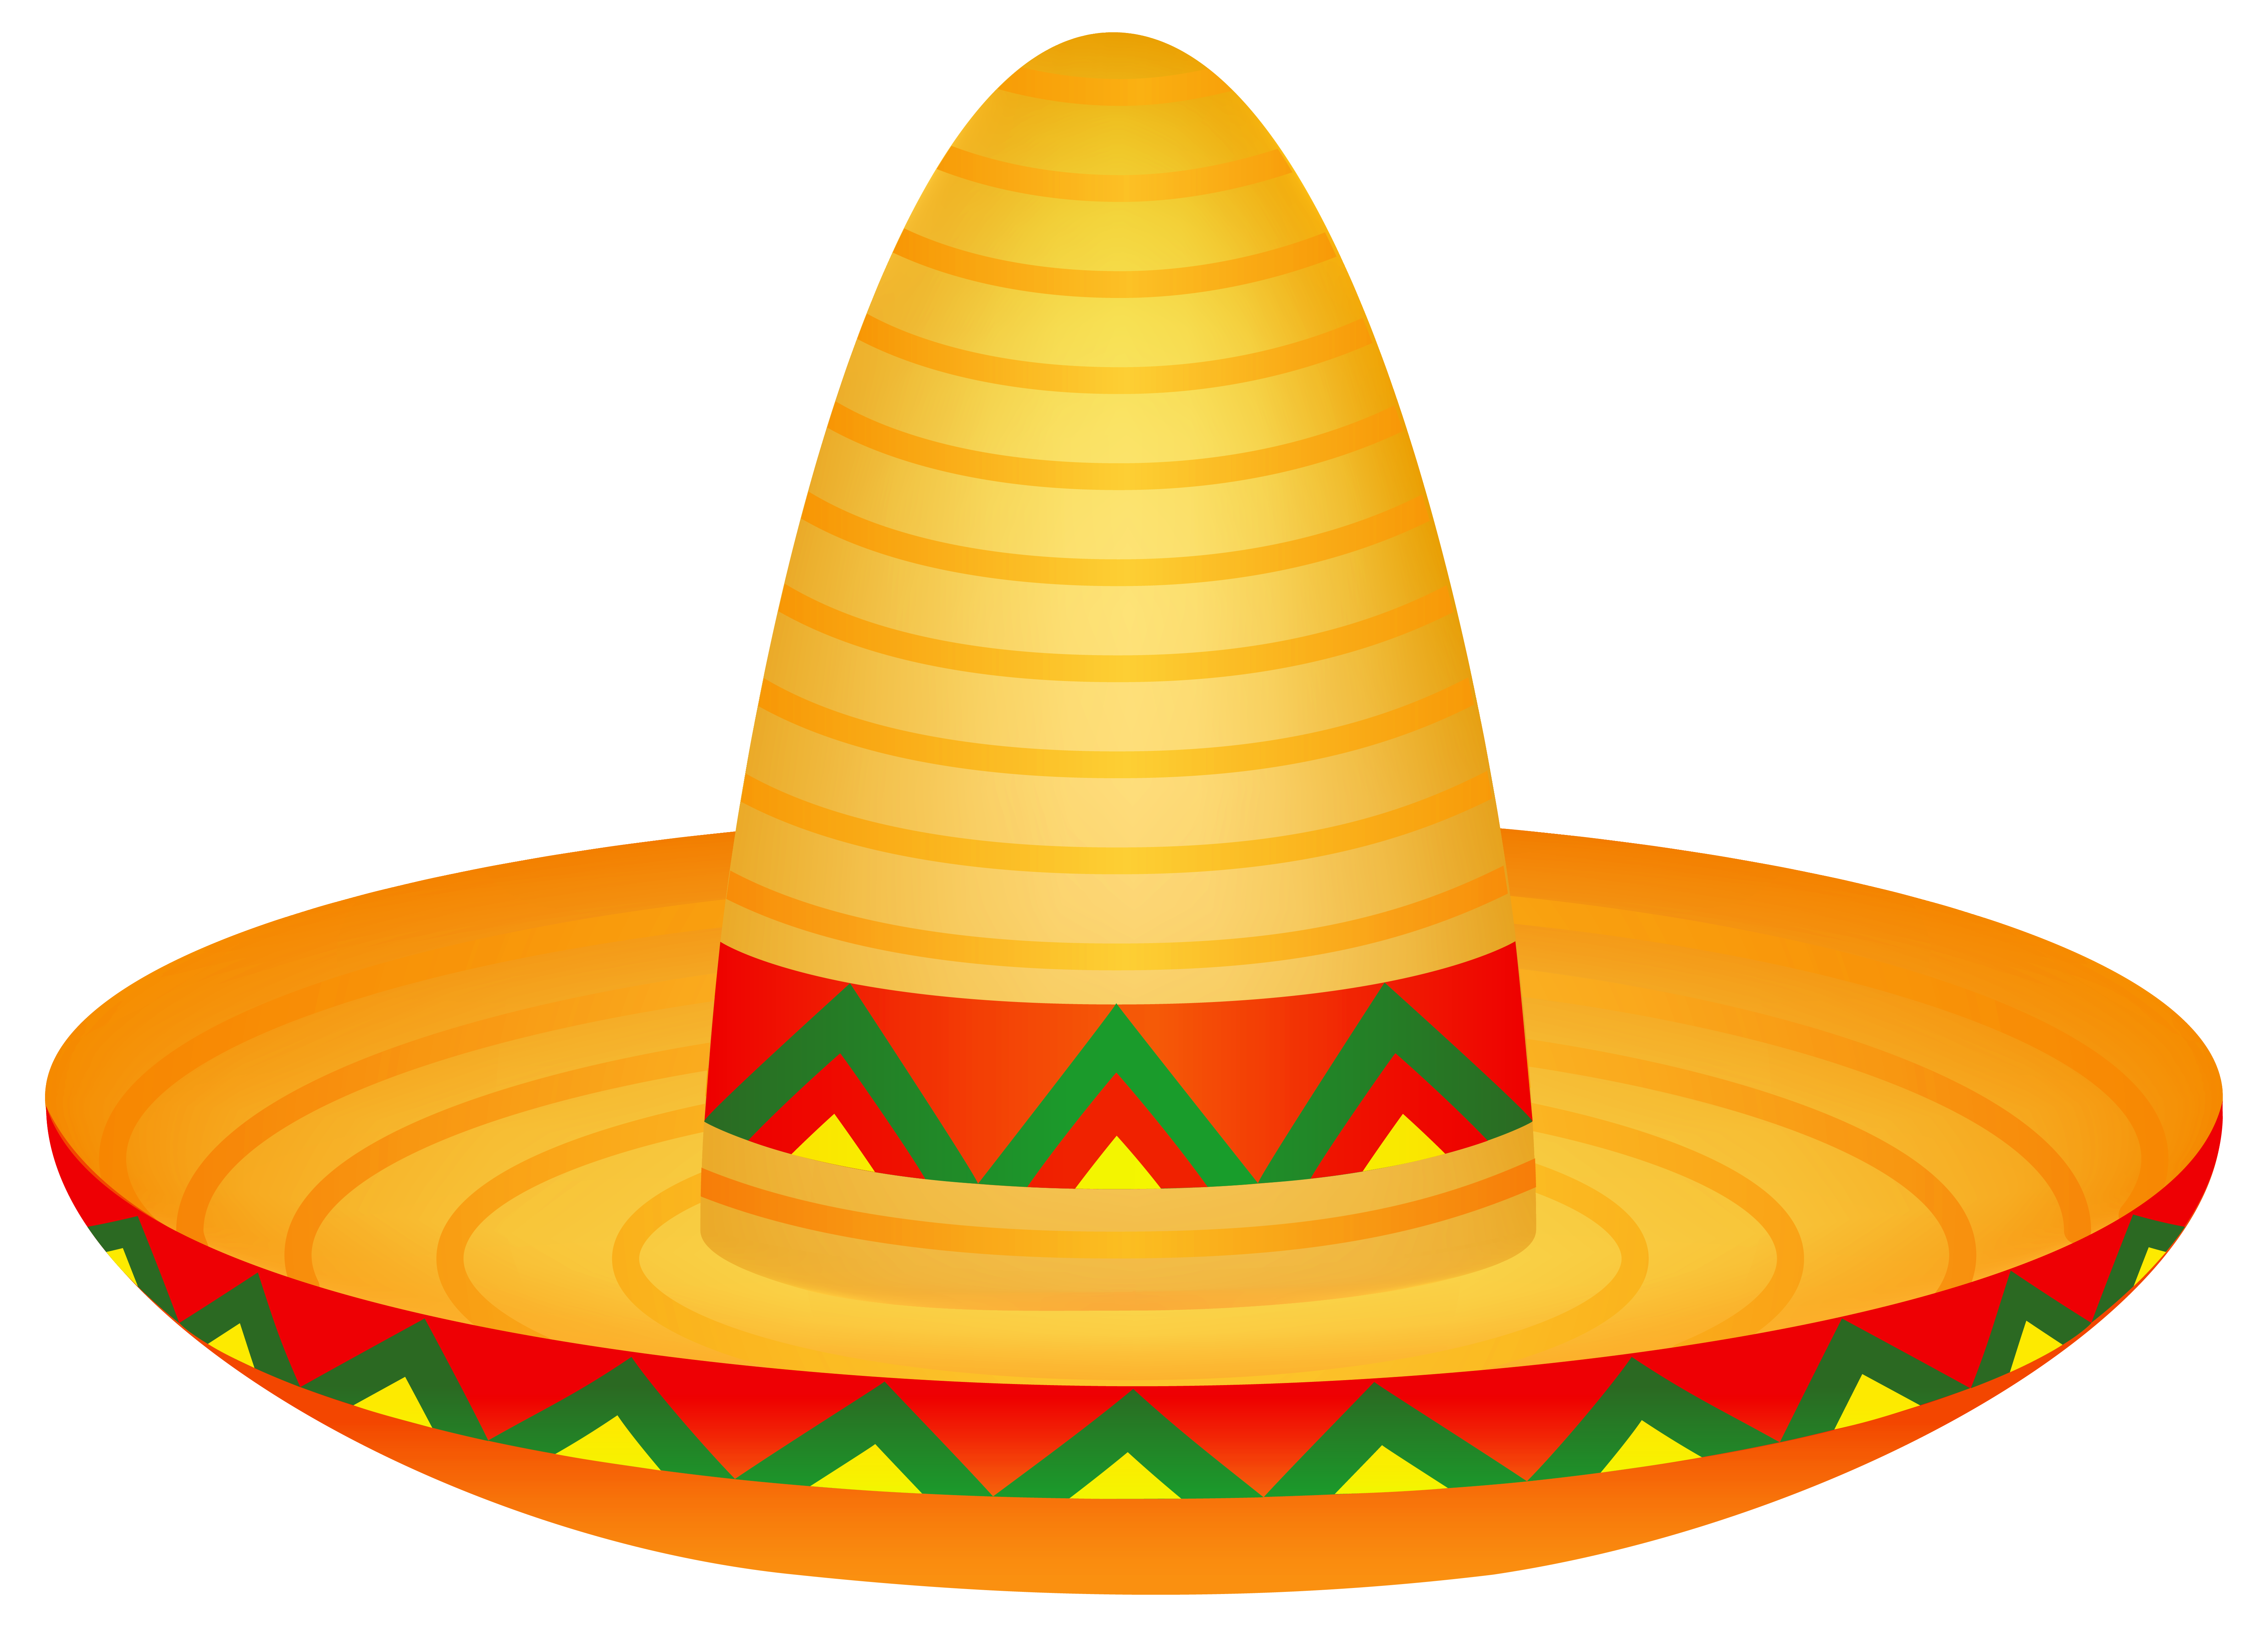 Sombrero clipart border. Mexican png image gallery